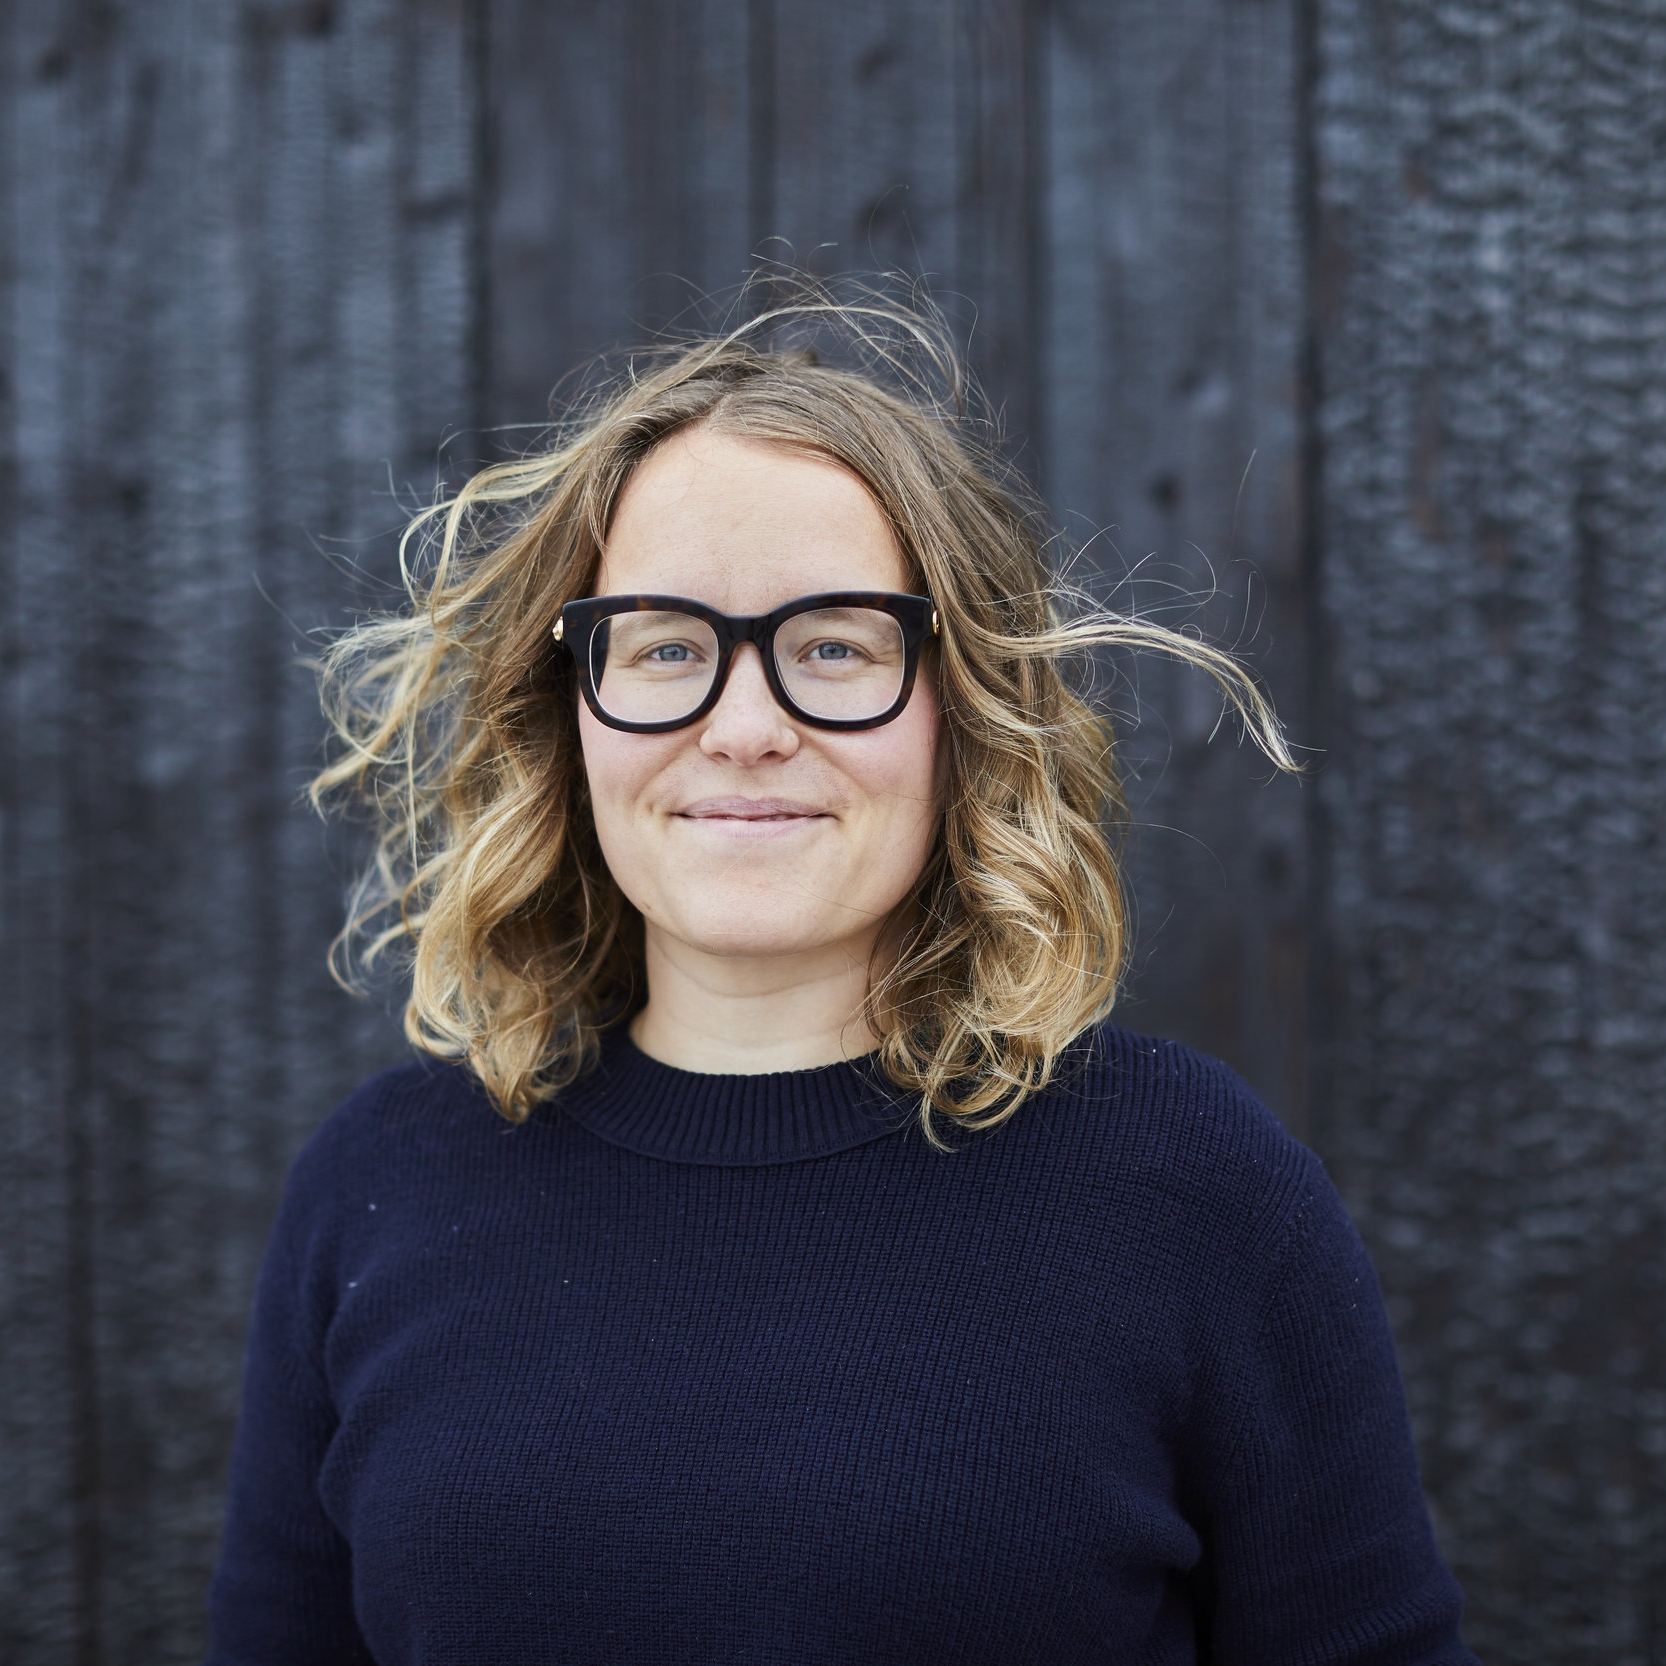 Karin Lindroos, Head of Storytelling - If you need information about storytelling:T: +358 00 477 035E: karin@nord-t.com